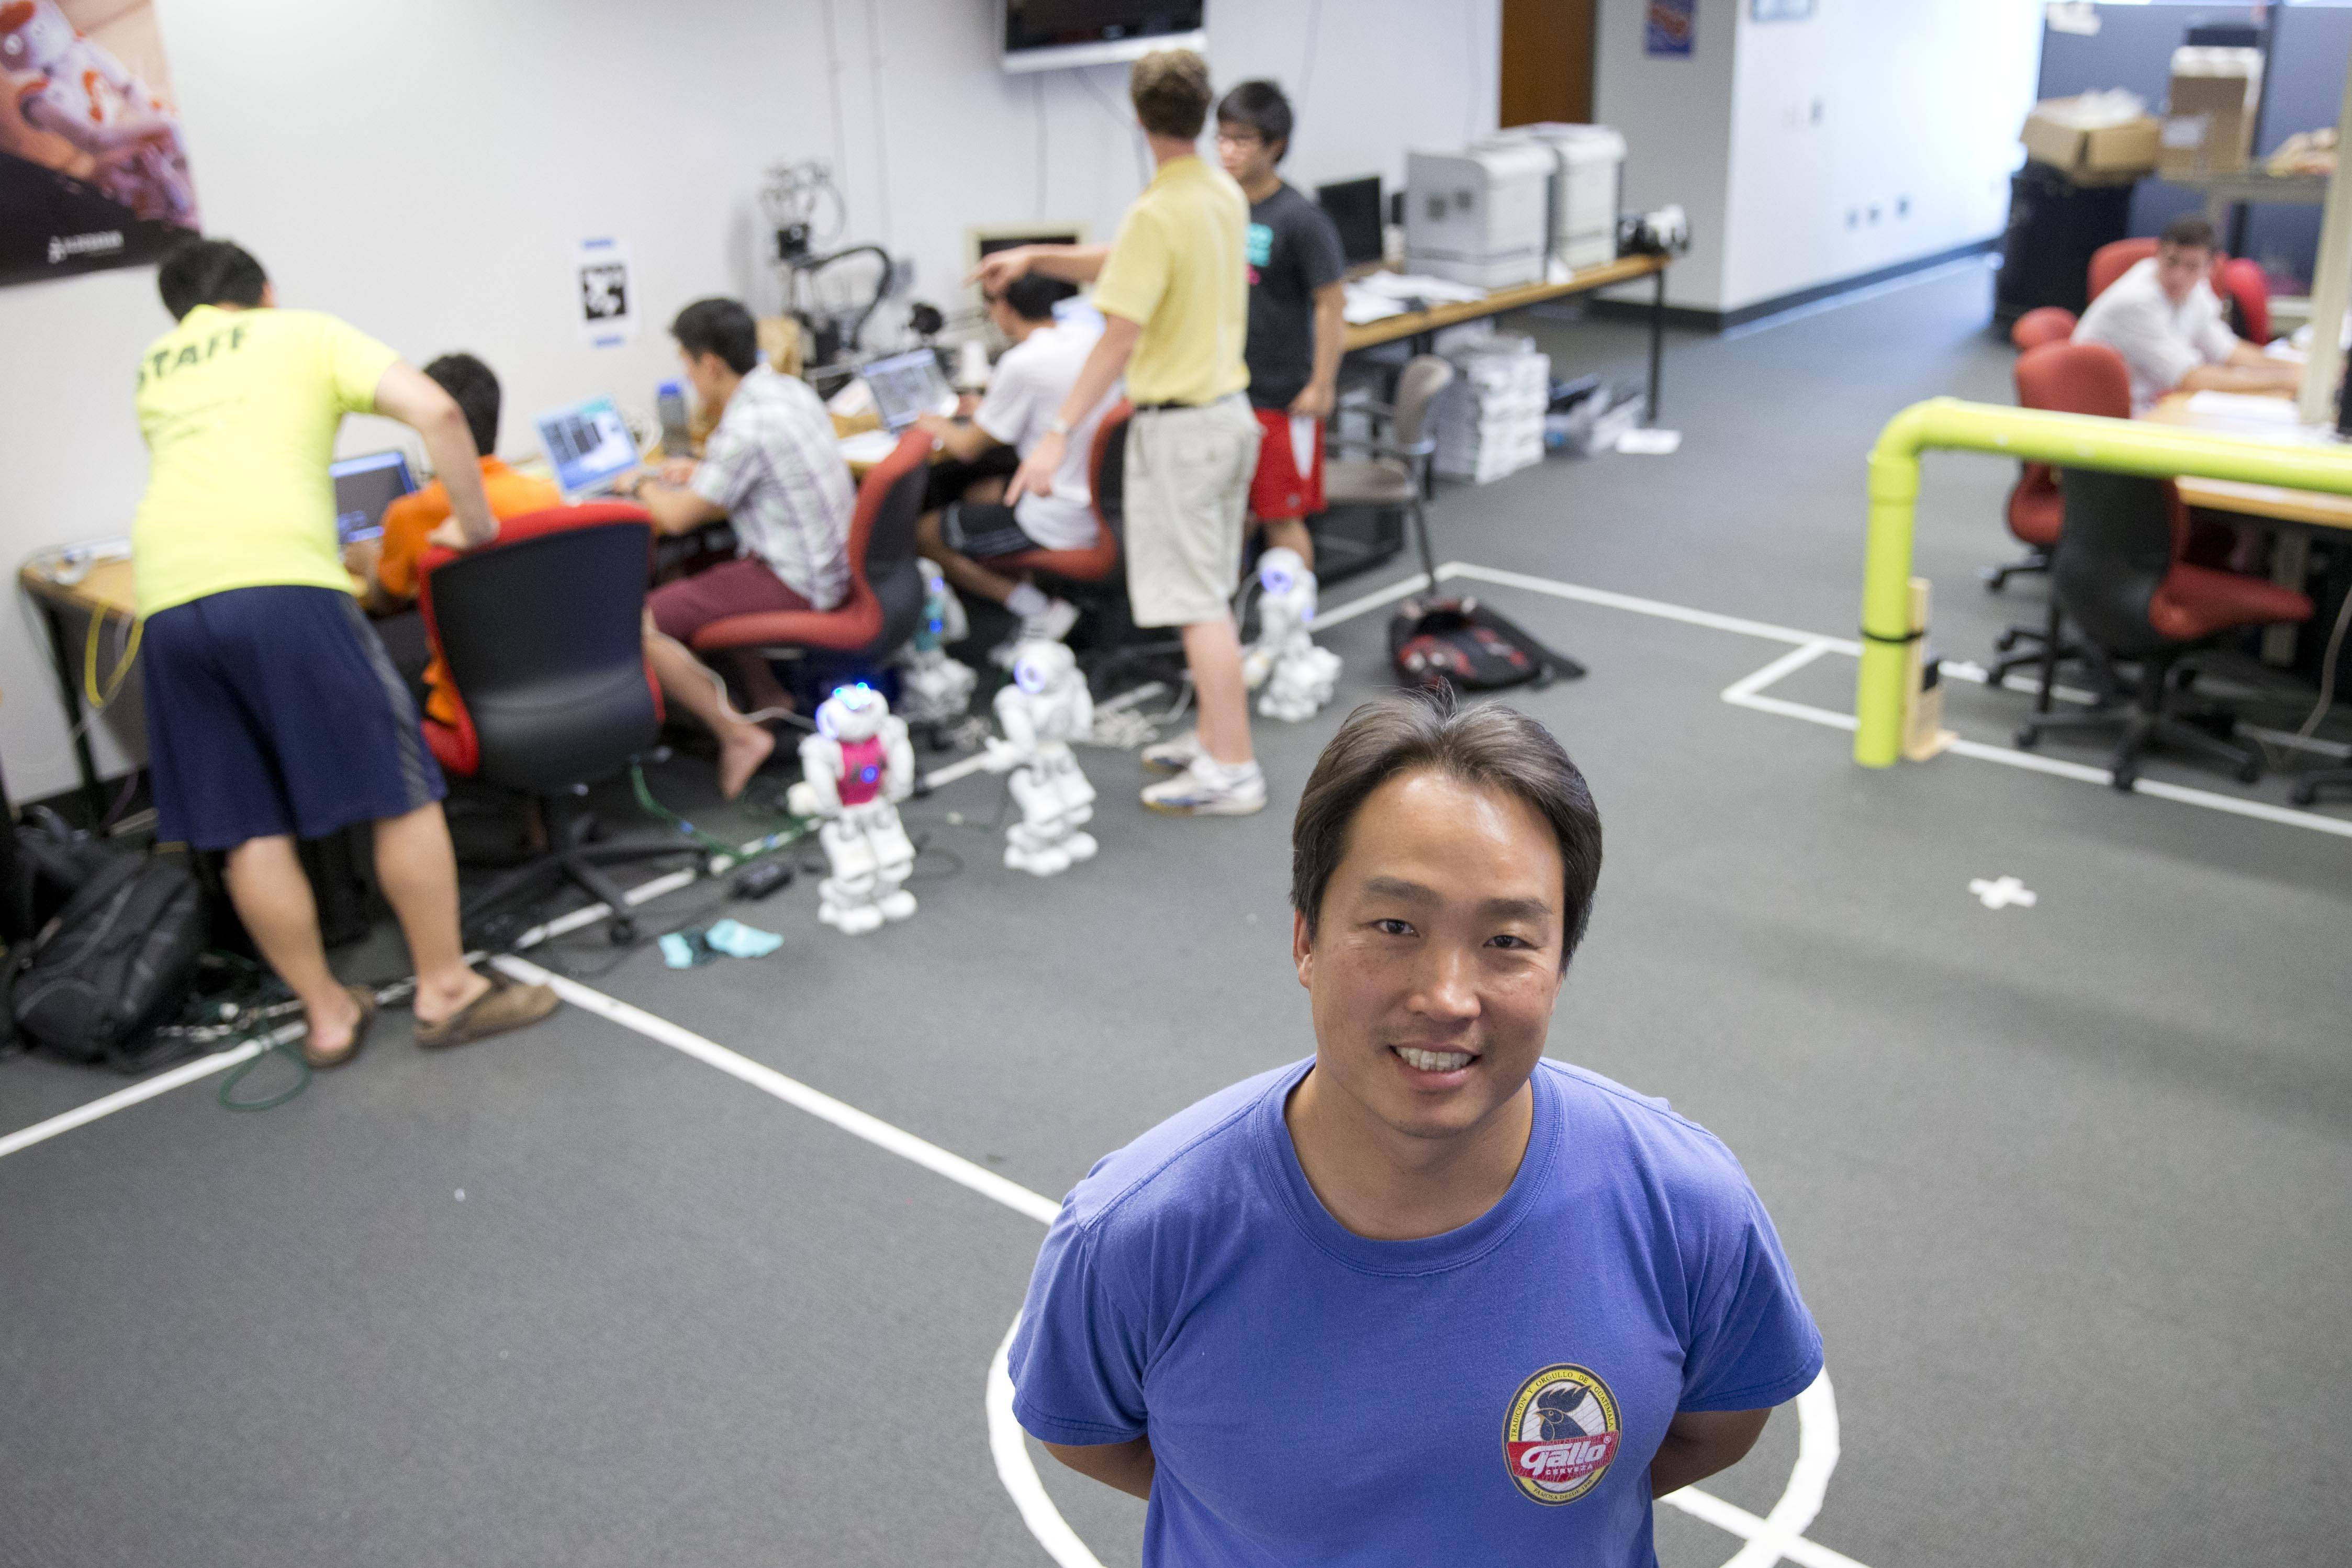 "University of Pennsylvania engineering professor Dan Lee, who directs Penn's robotics lab in Philadelphia, has been the head ""coach"" of the school's RoboCup soccer teams since 2002. Back then, the games resembled those played by 5-year-old children, Lee said."